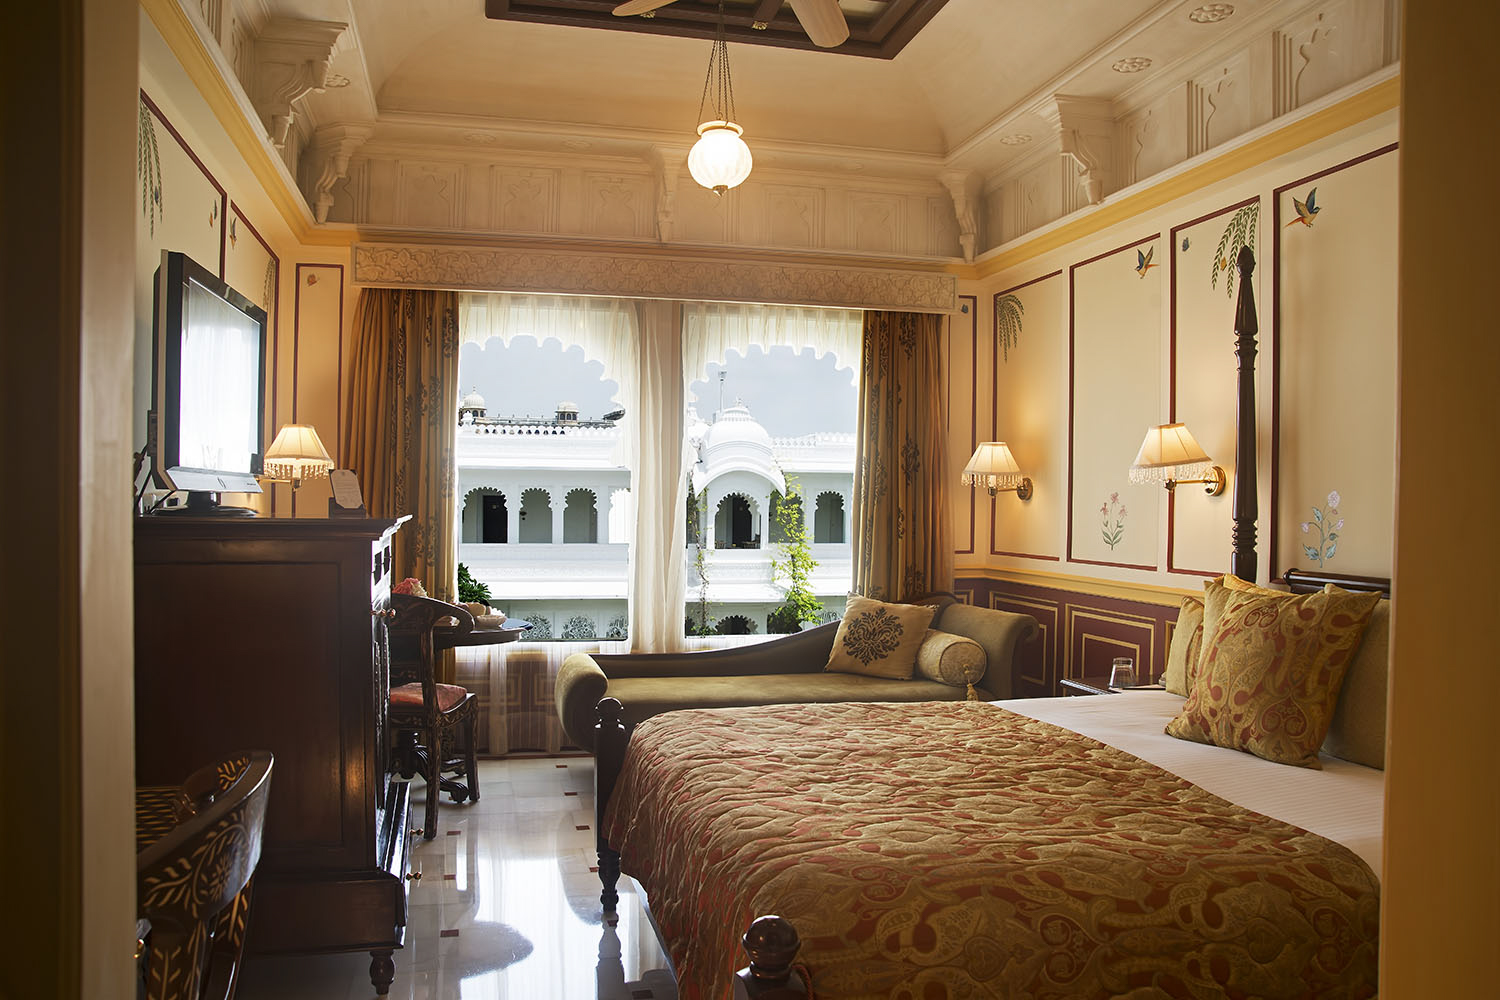 Best hotel booking offers in Udaipur